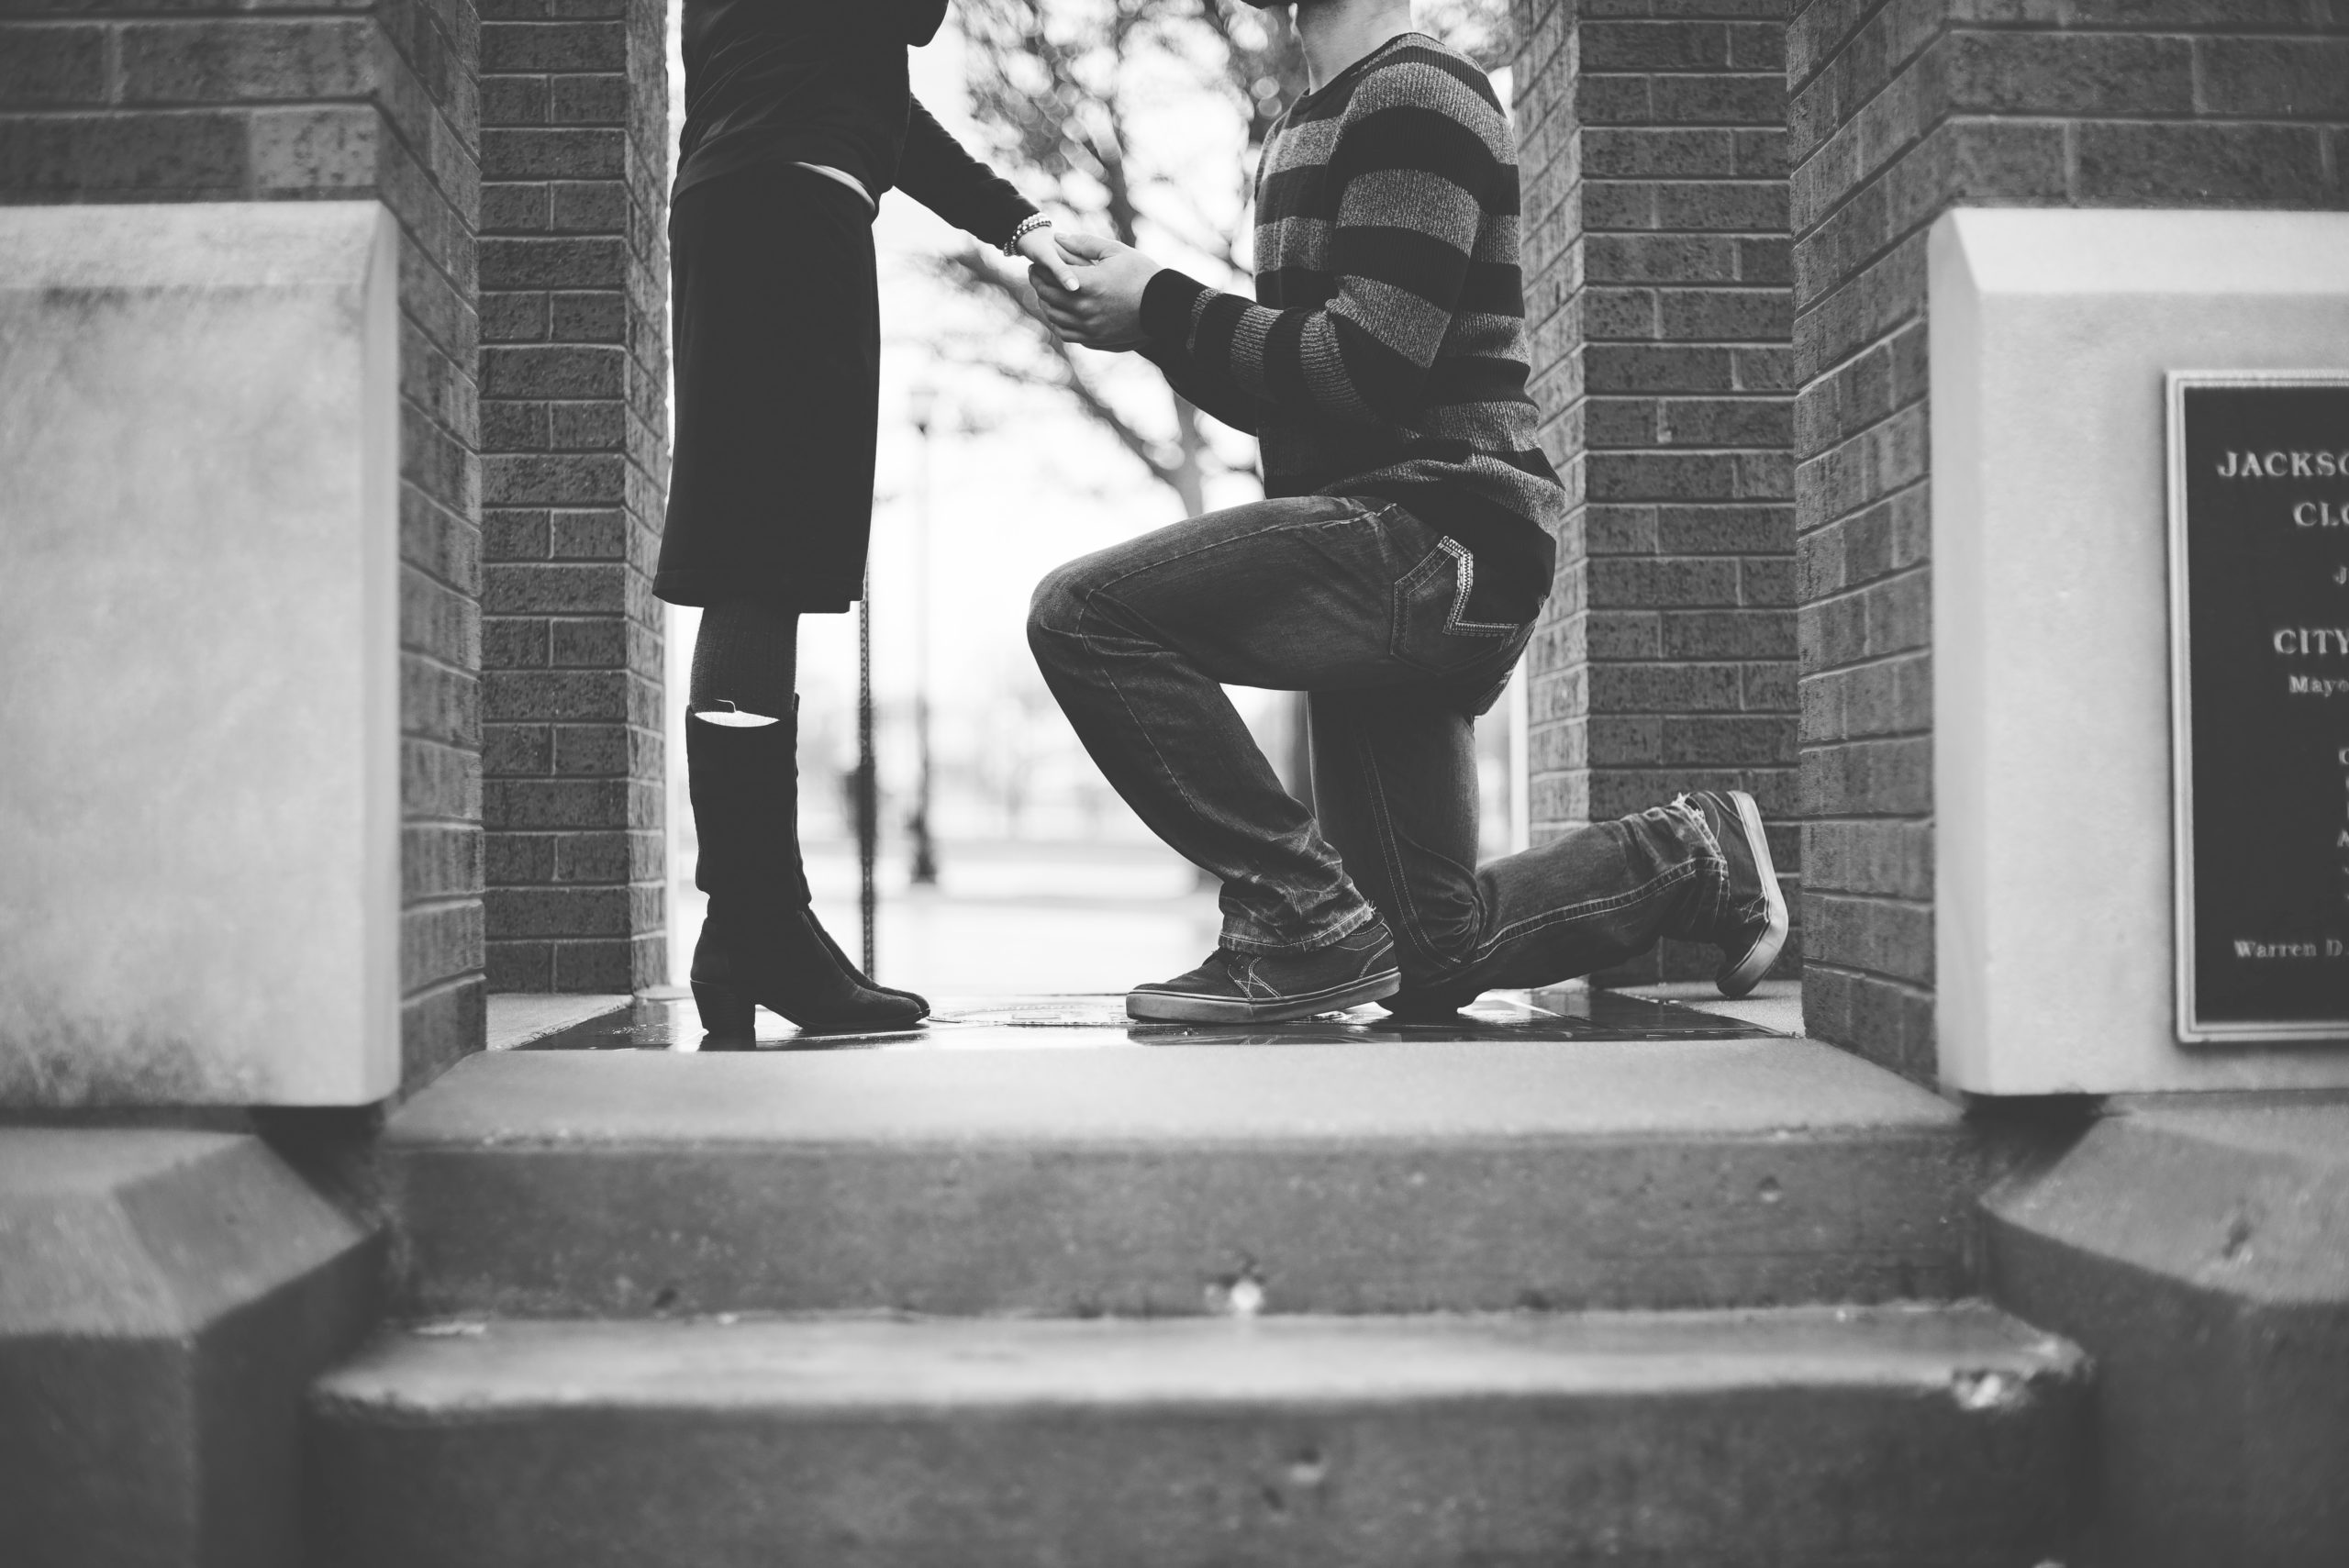 Man on knee proposing